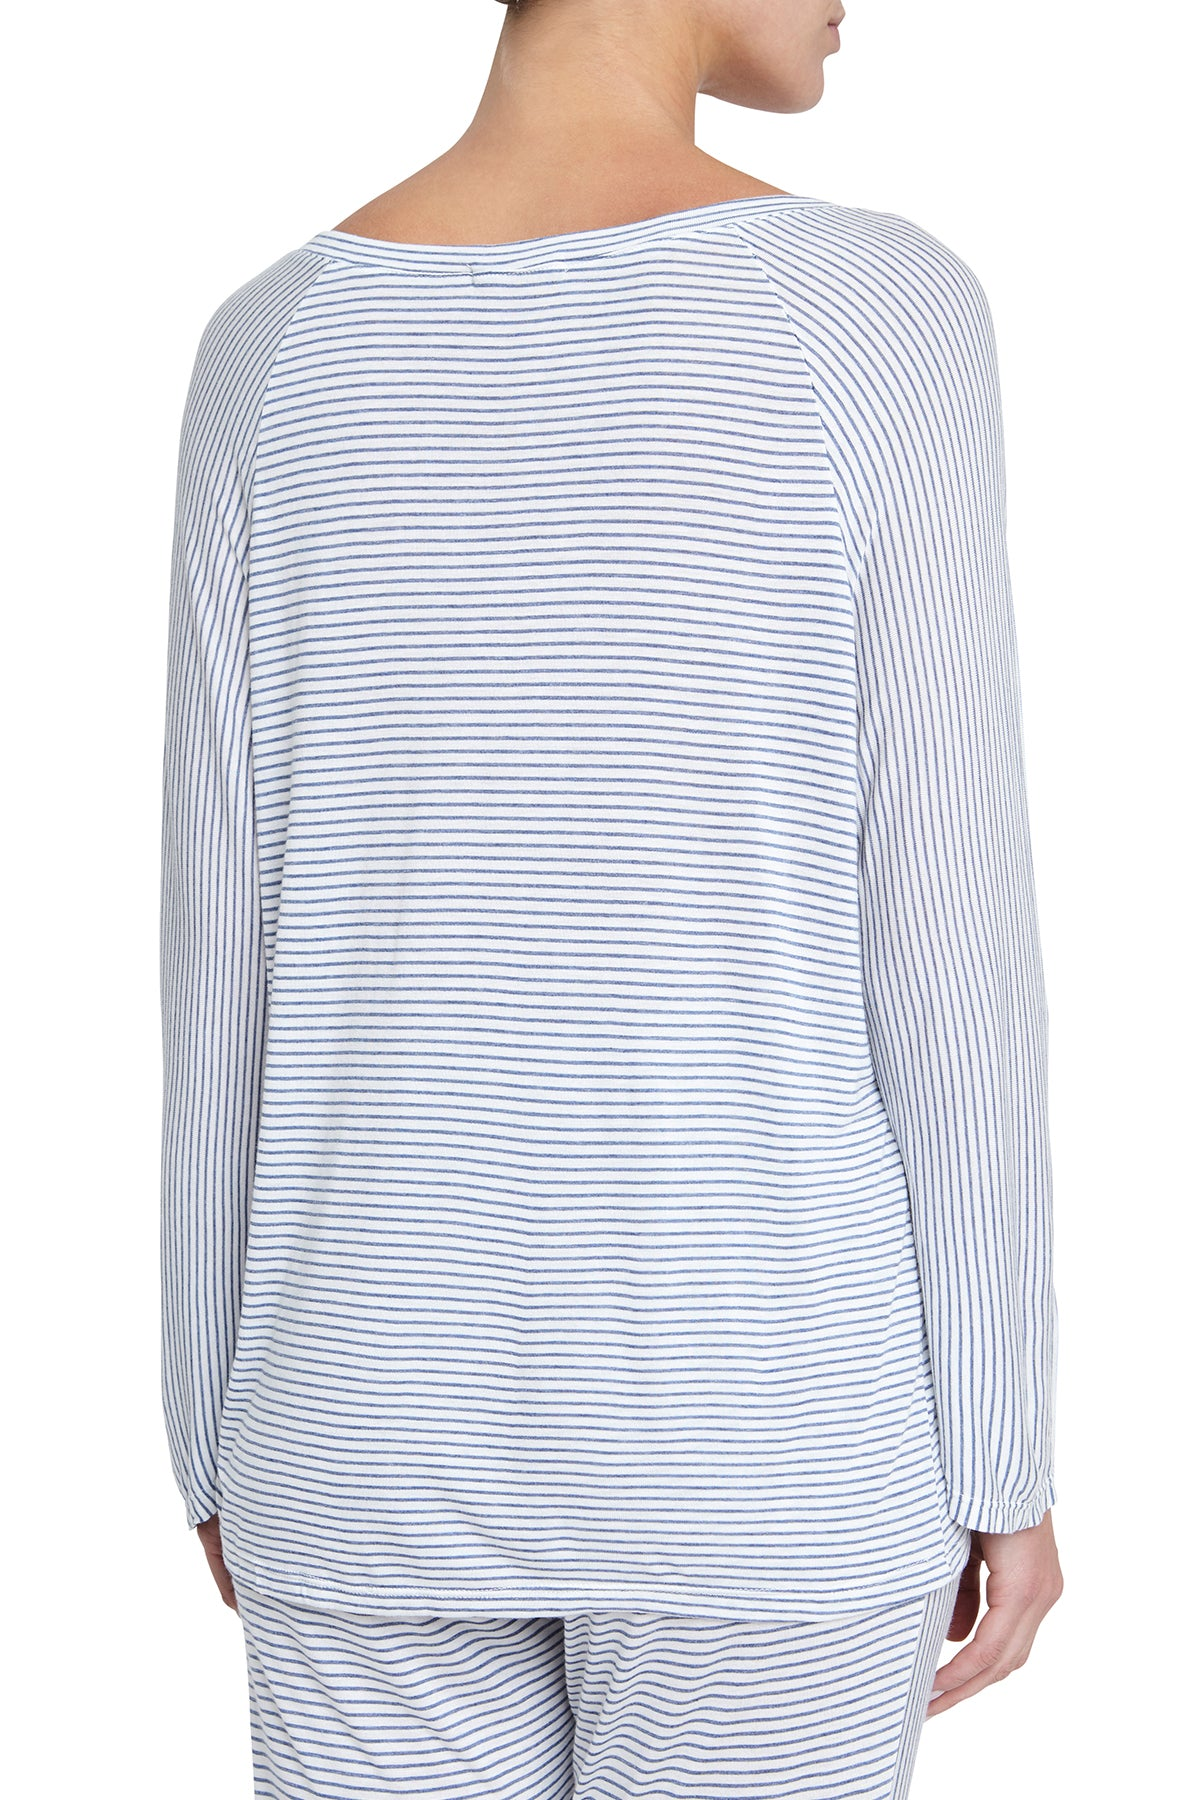 Eberjey Georgie Not So Basic Long Sleeve Top